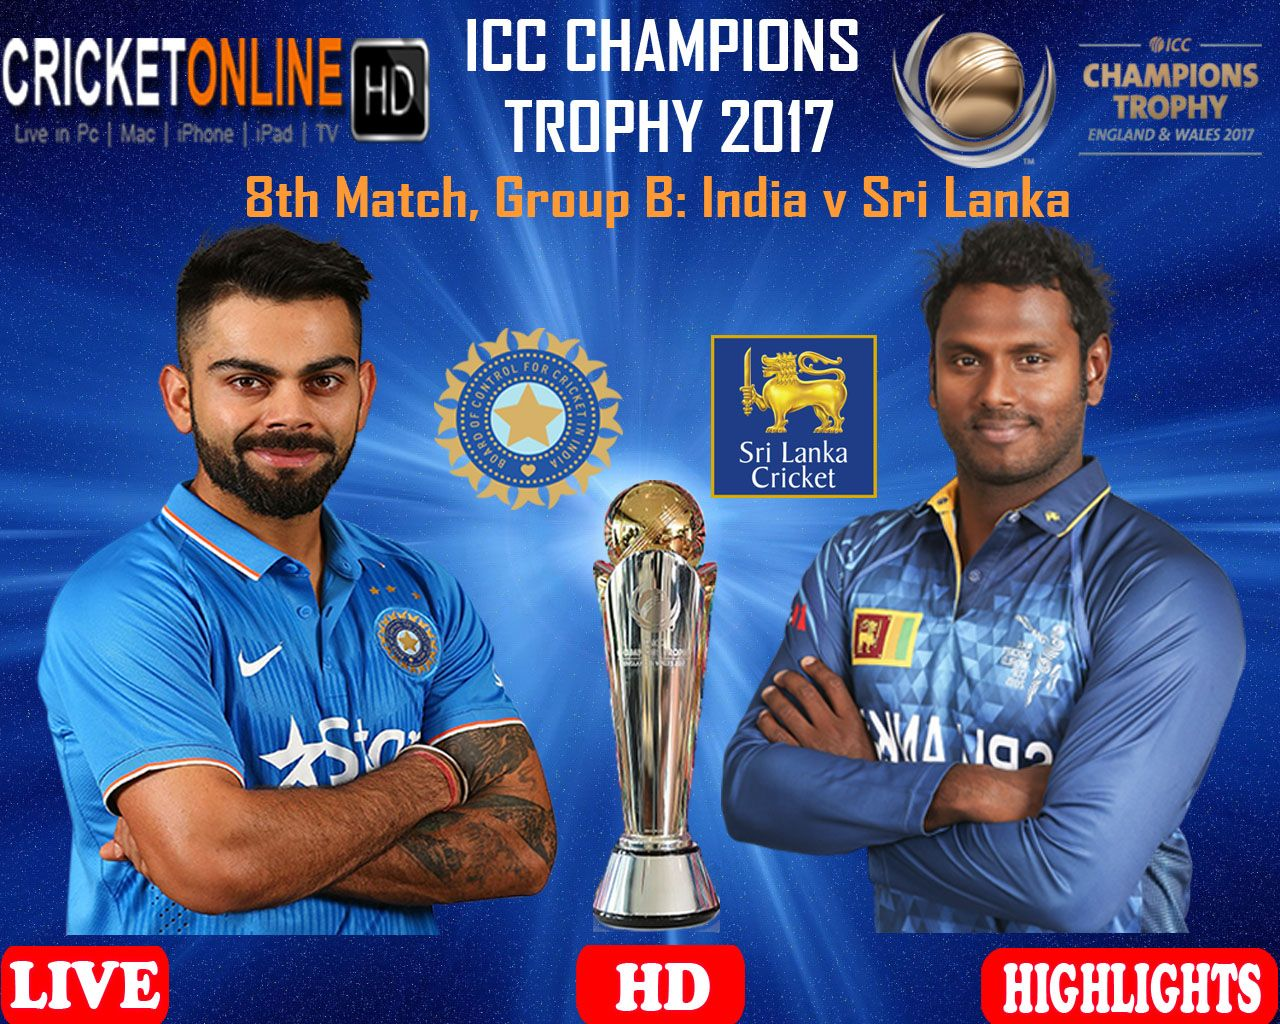 Pin on LIVE cricket ON HD, HIGHLIGHTS of All Matches